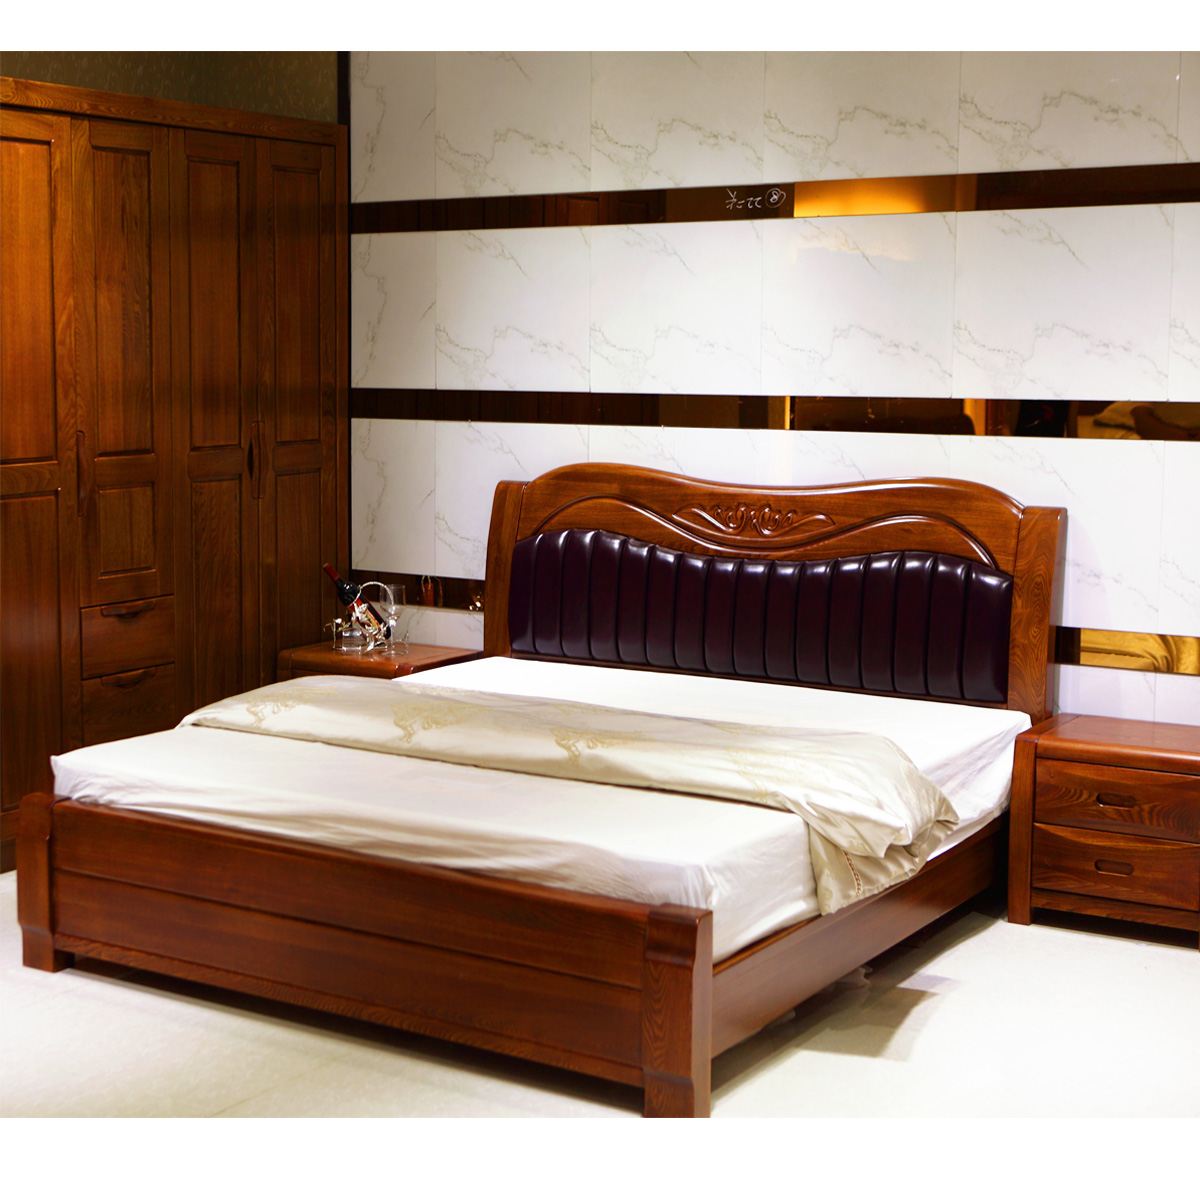 The elm furniture soft bed on the cortex of old elm bed 1.8 meters of modern Chinese style solid wood bed double bed old elm